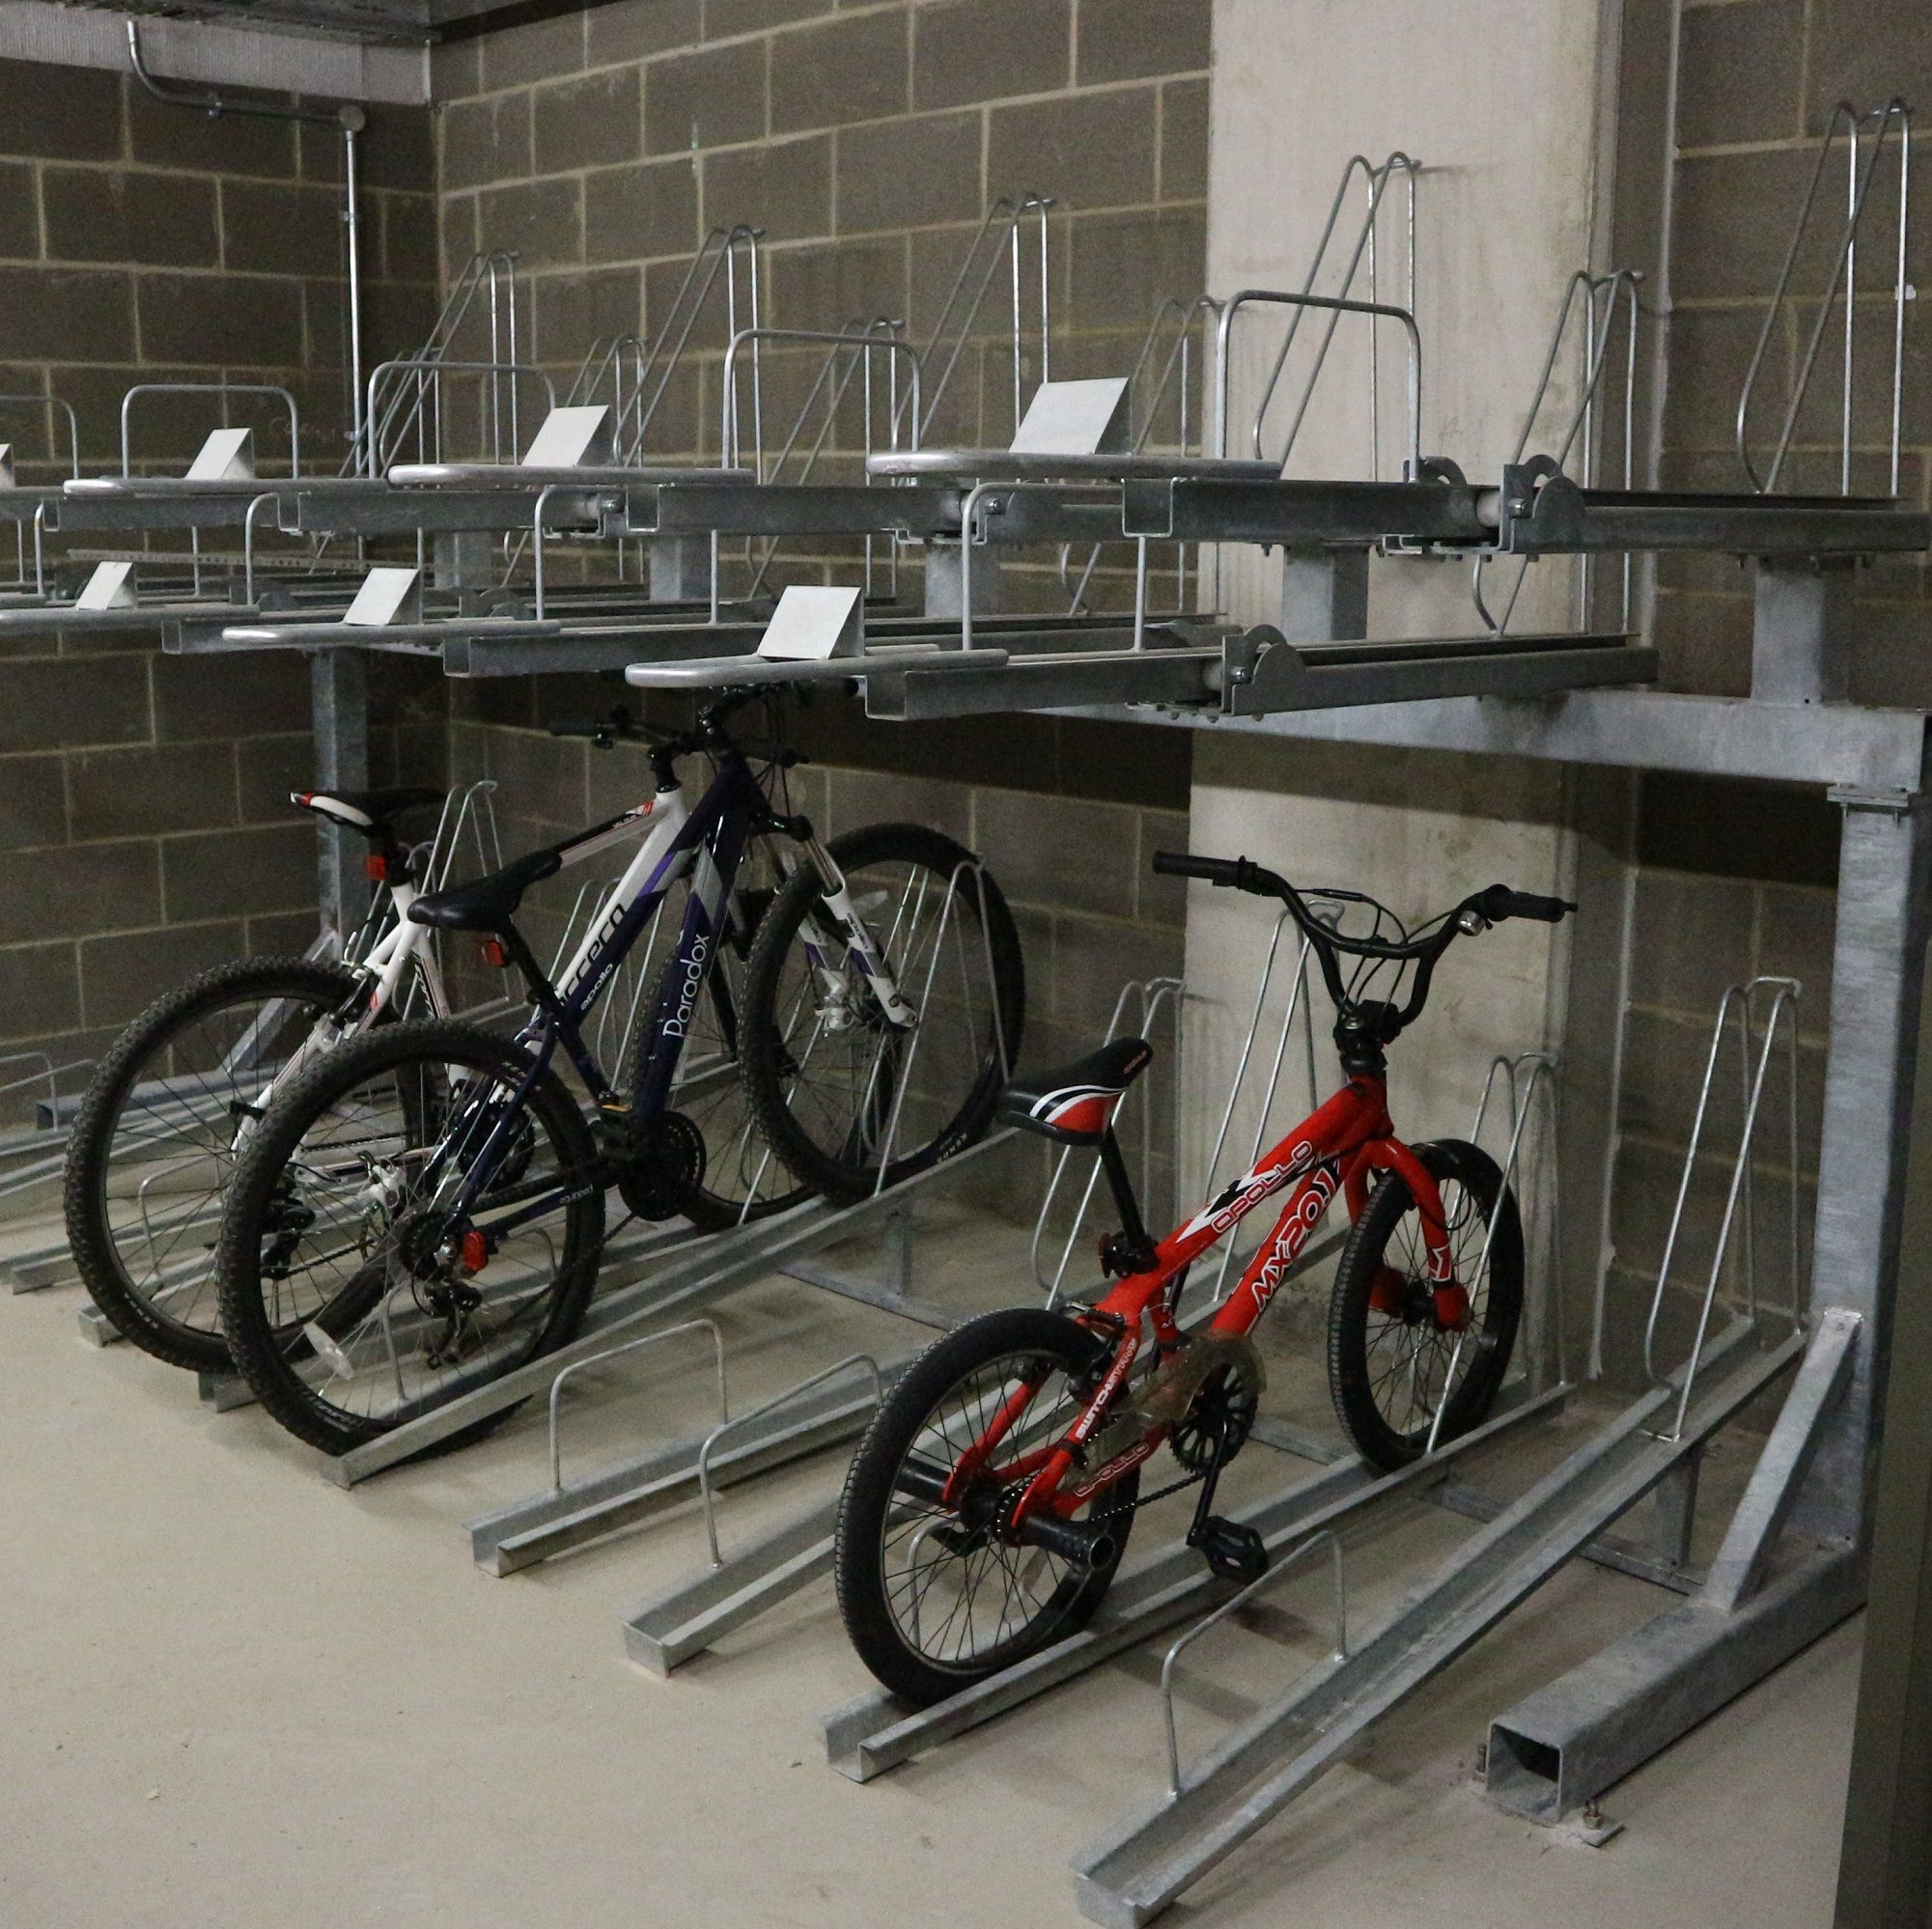 Double Decker Cycle Stand | Street Furniture Direct | Cycle Parking ...